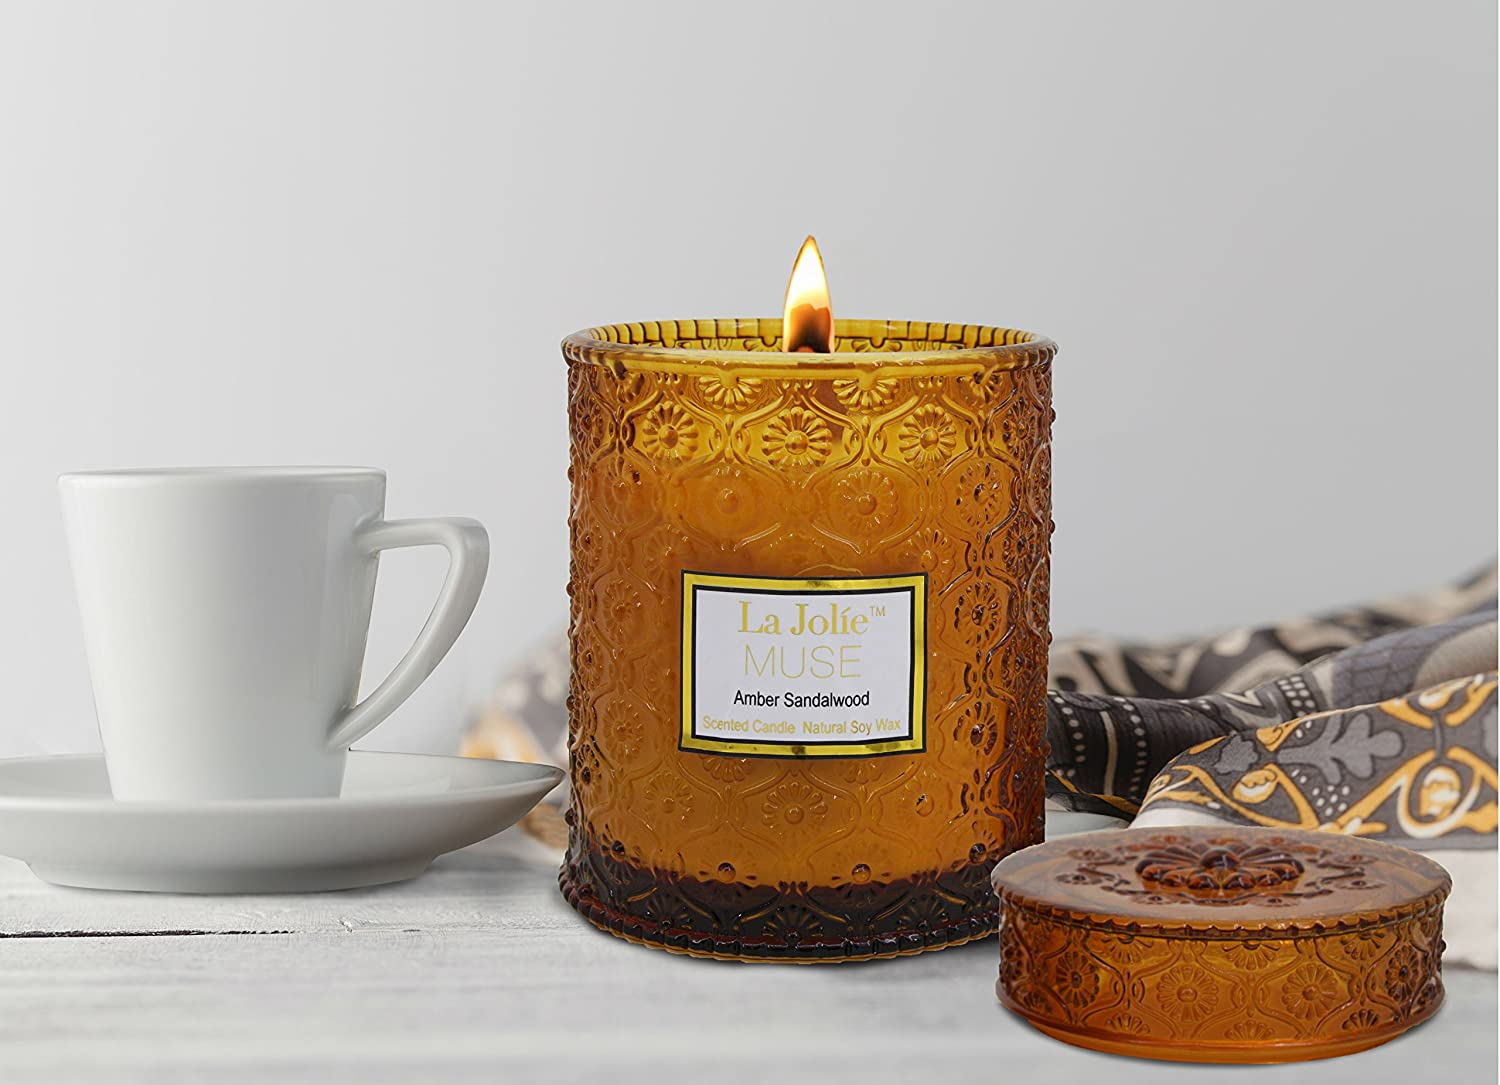 Amazon.com: Wood Wick Scented Candles 21Oz Amber Sandalwood Soy Wax Candle  Large Glass Jar, 90 Hours Burning Gift for Her: Home & Kitchen